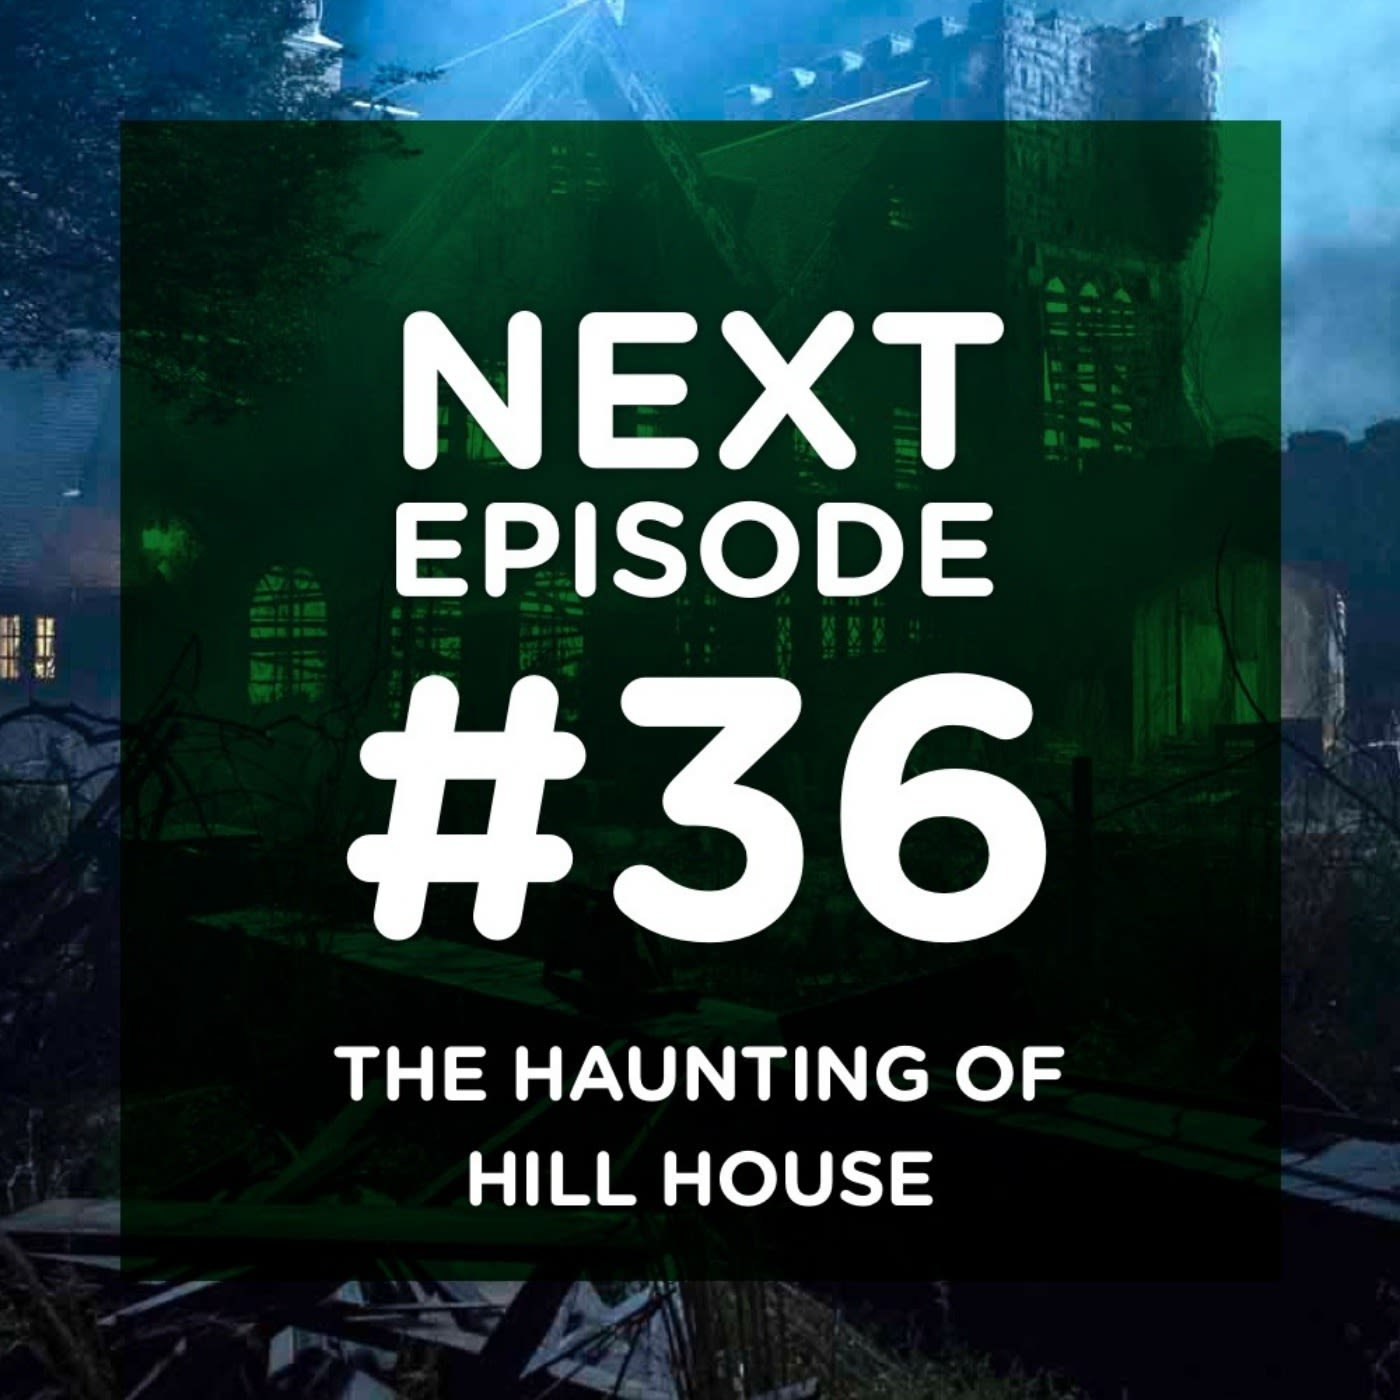 Les frissons parfaits de The Haunting of Hill House